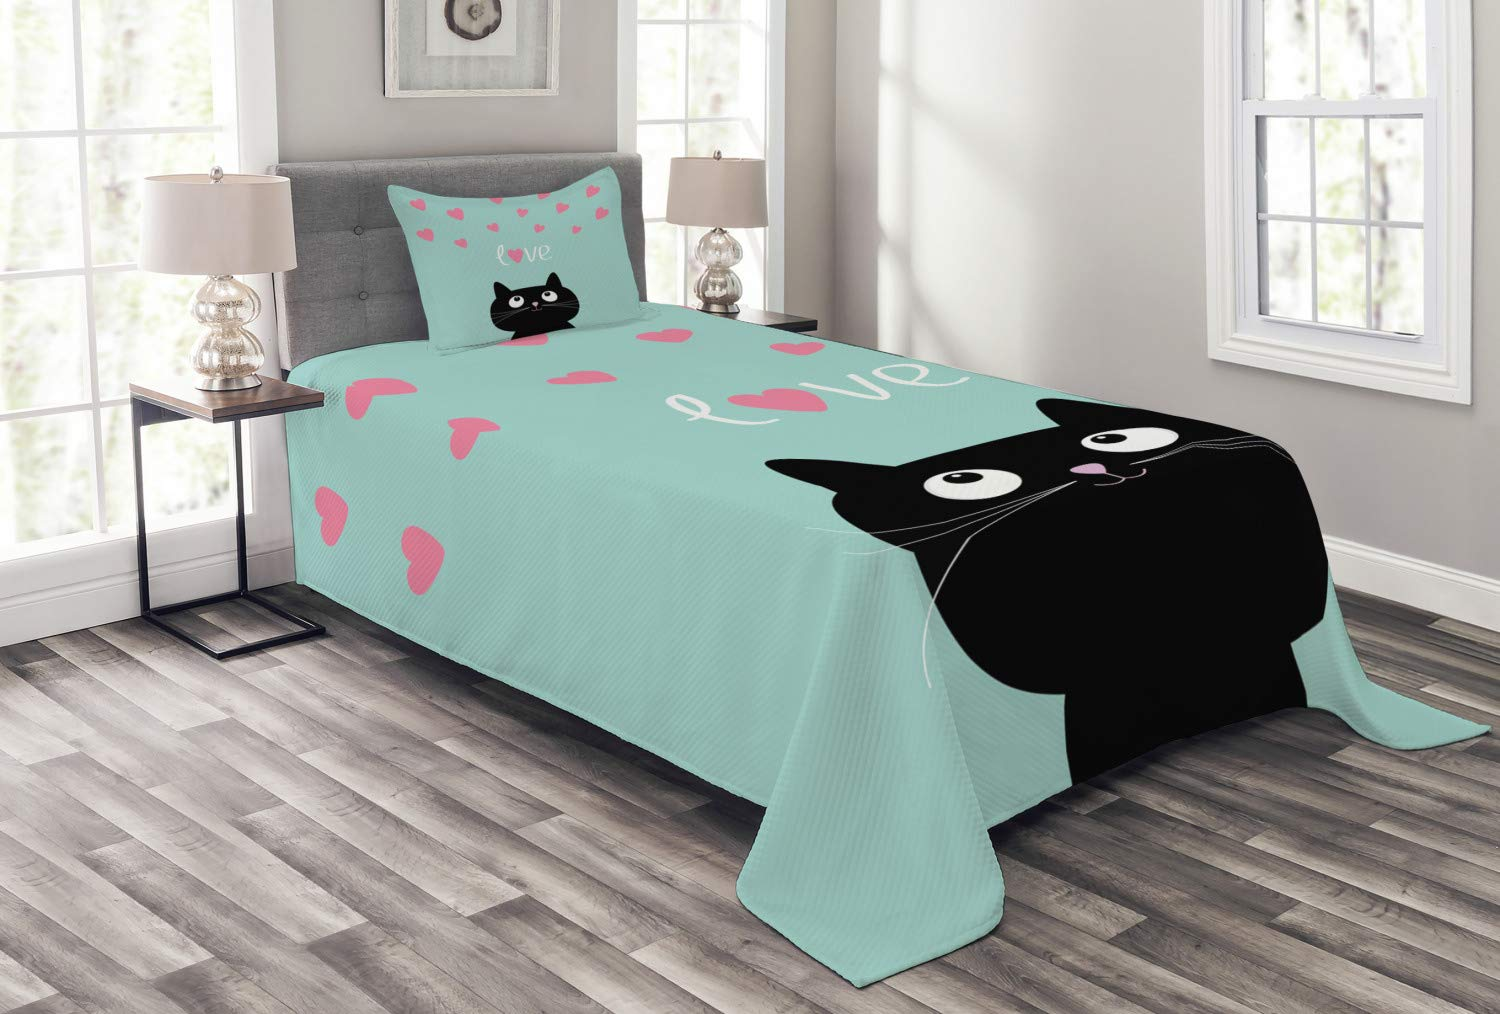 Lunarable Valentines Bedspread, Kitty Heart Cat Companions Kids Children Illustration, Decorative Quilted 2 Piece Coverlet Set with Pillow Sham, Twin Size, Seafoam Black